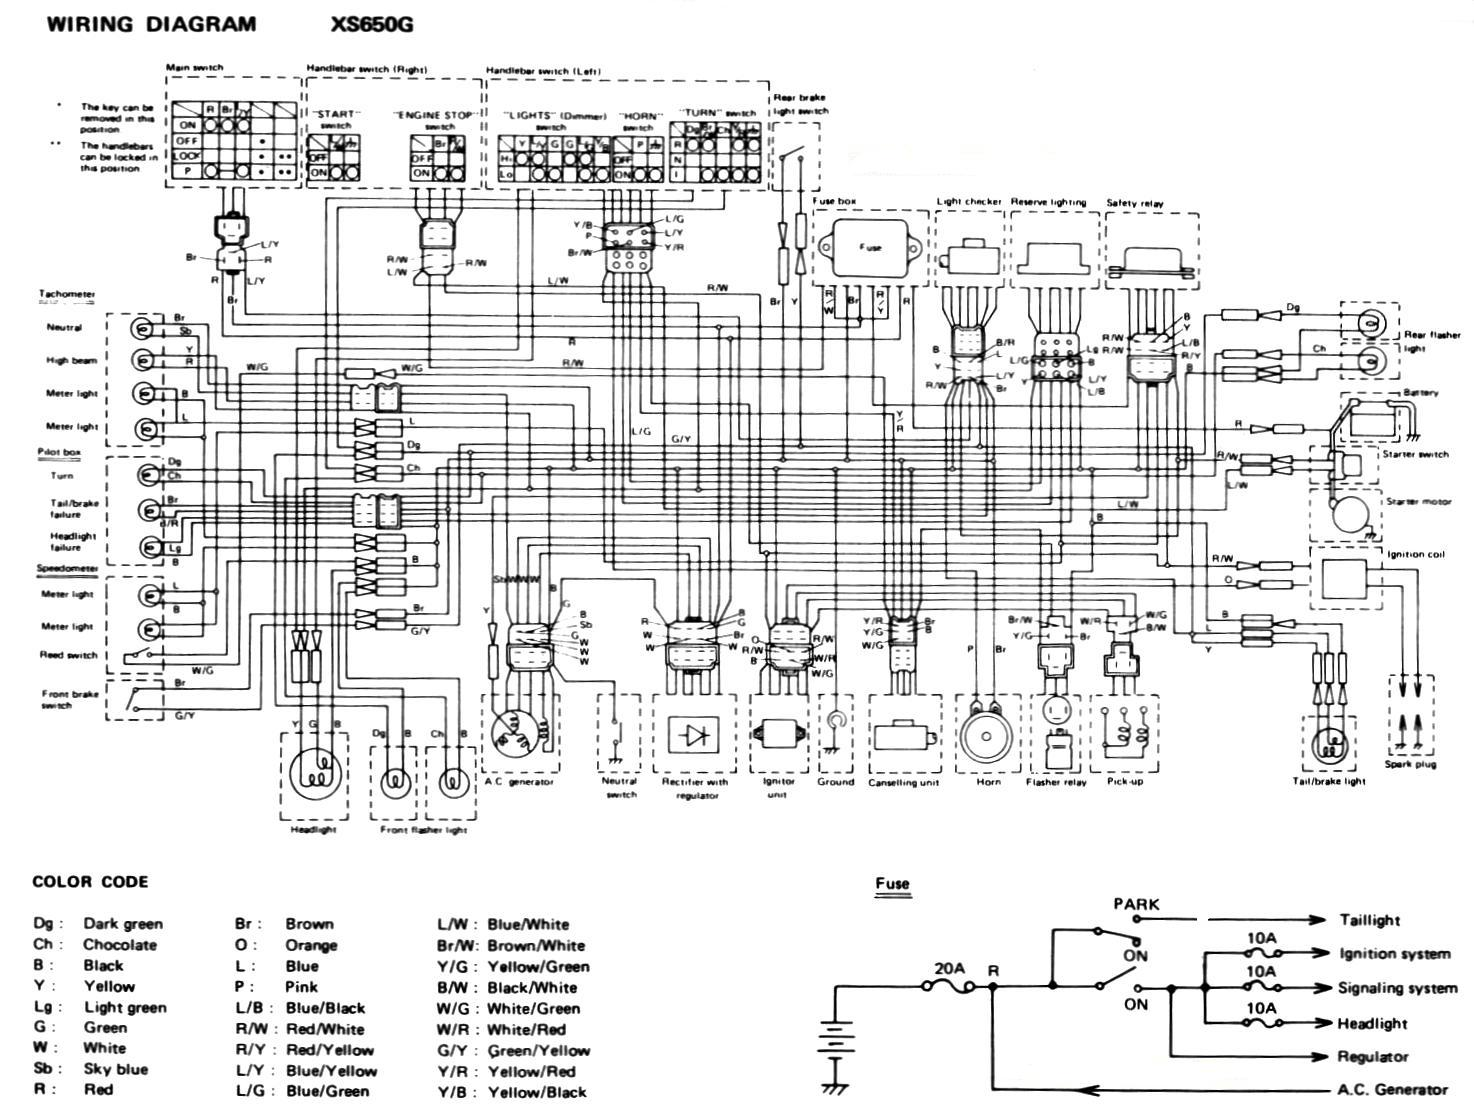 80XS650G wiring diagrams yamaha rectifier wiring kits at gsmportal.co